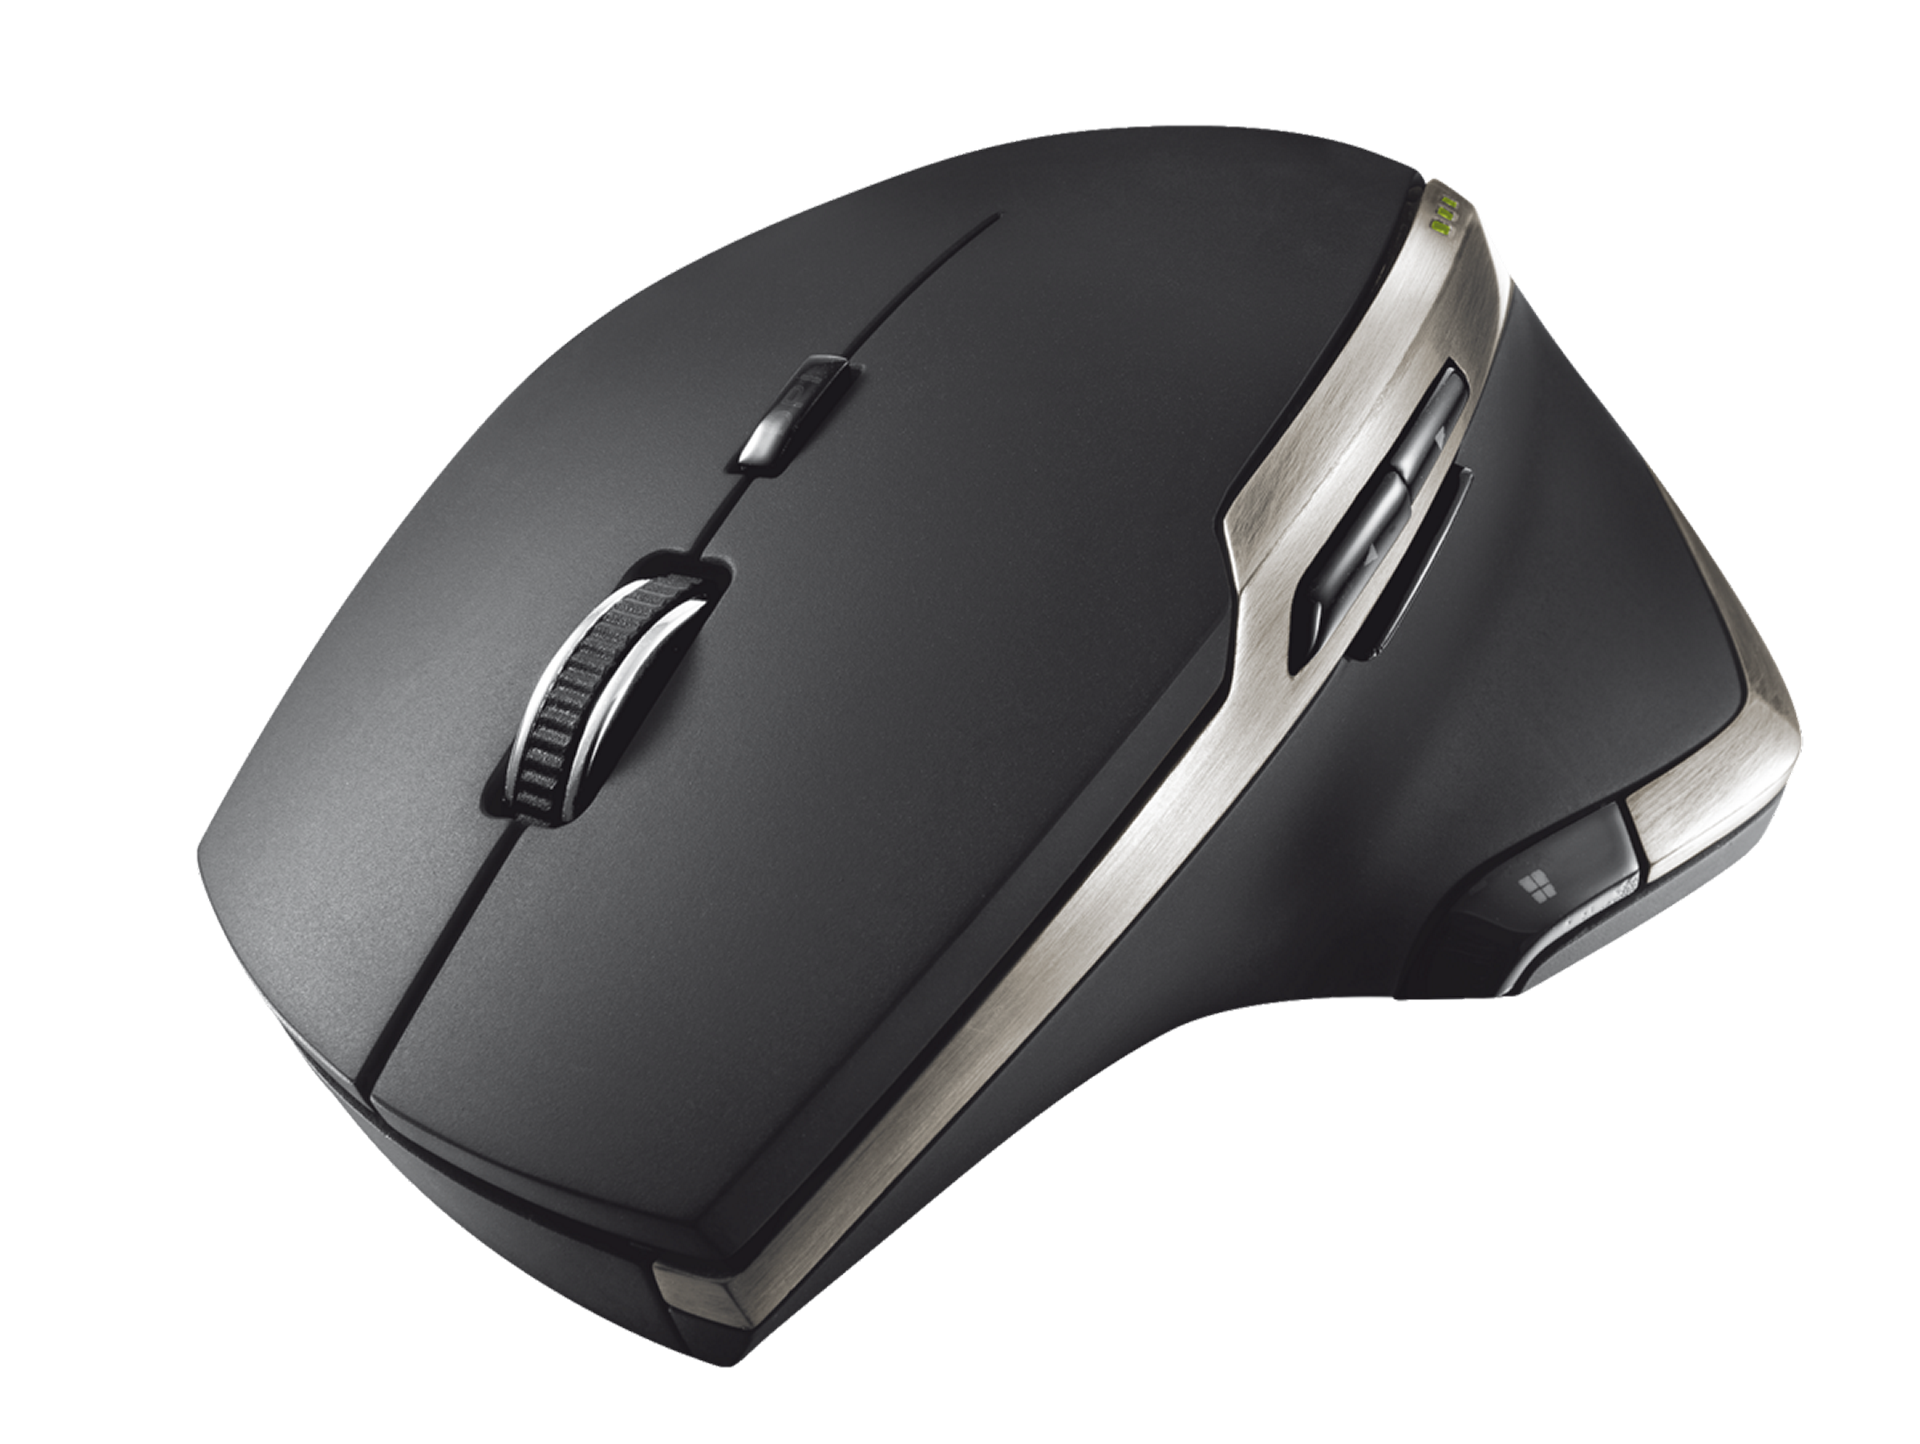 myš TRUST Evo Advanced Laser Mouse